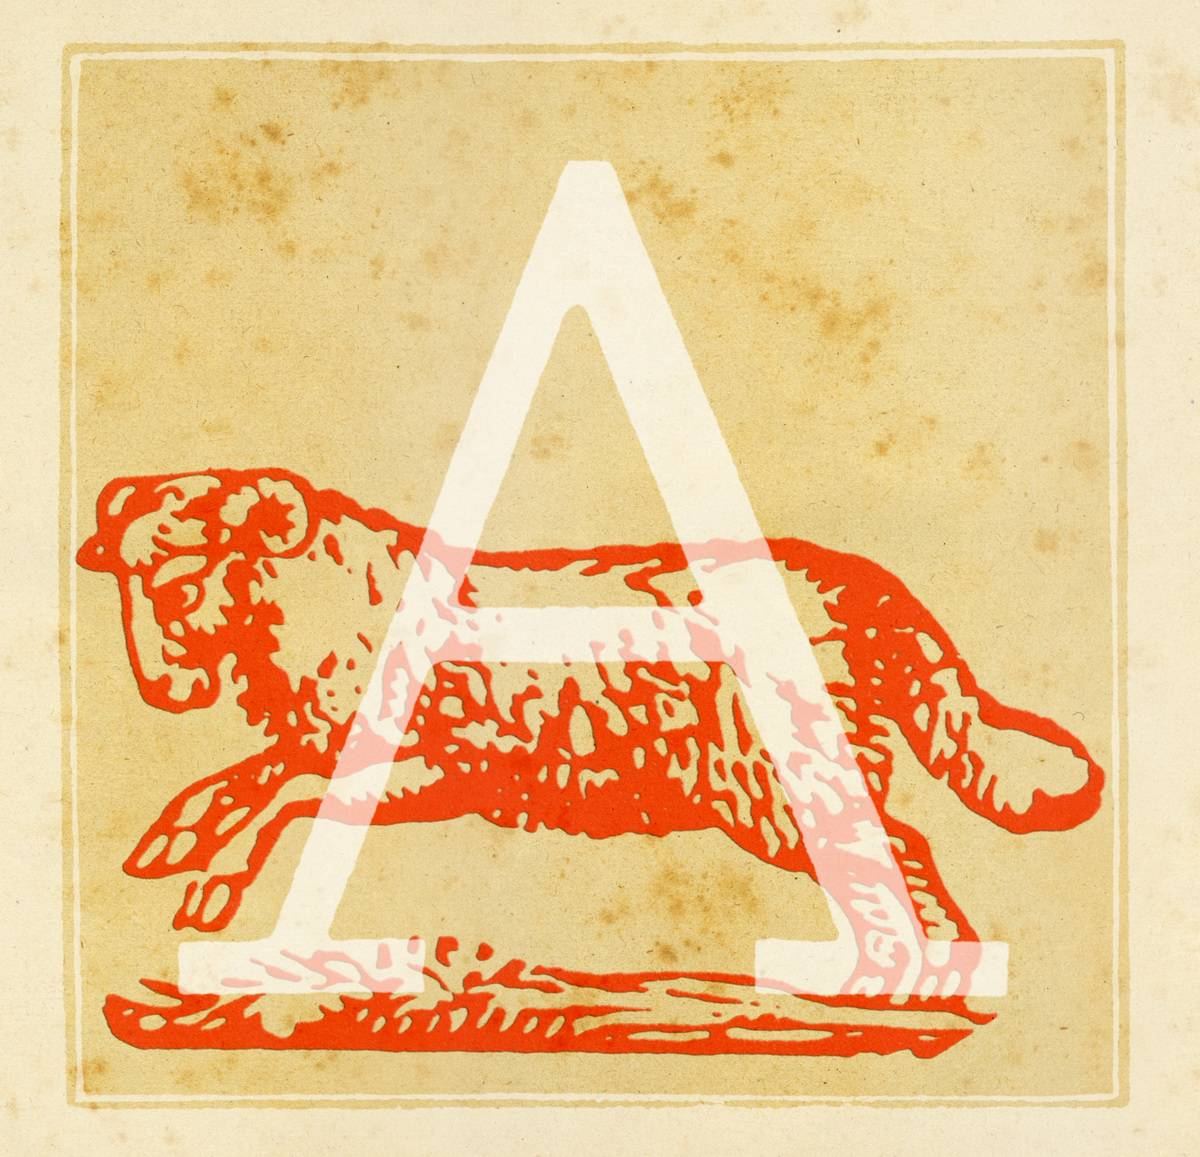 Capital letter A with a ram behind it - the Aries Zodiac sign